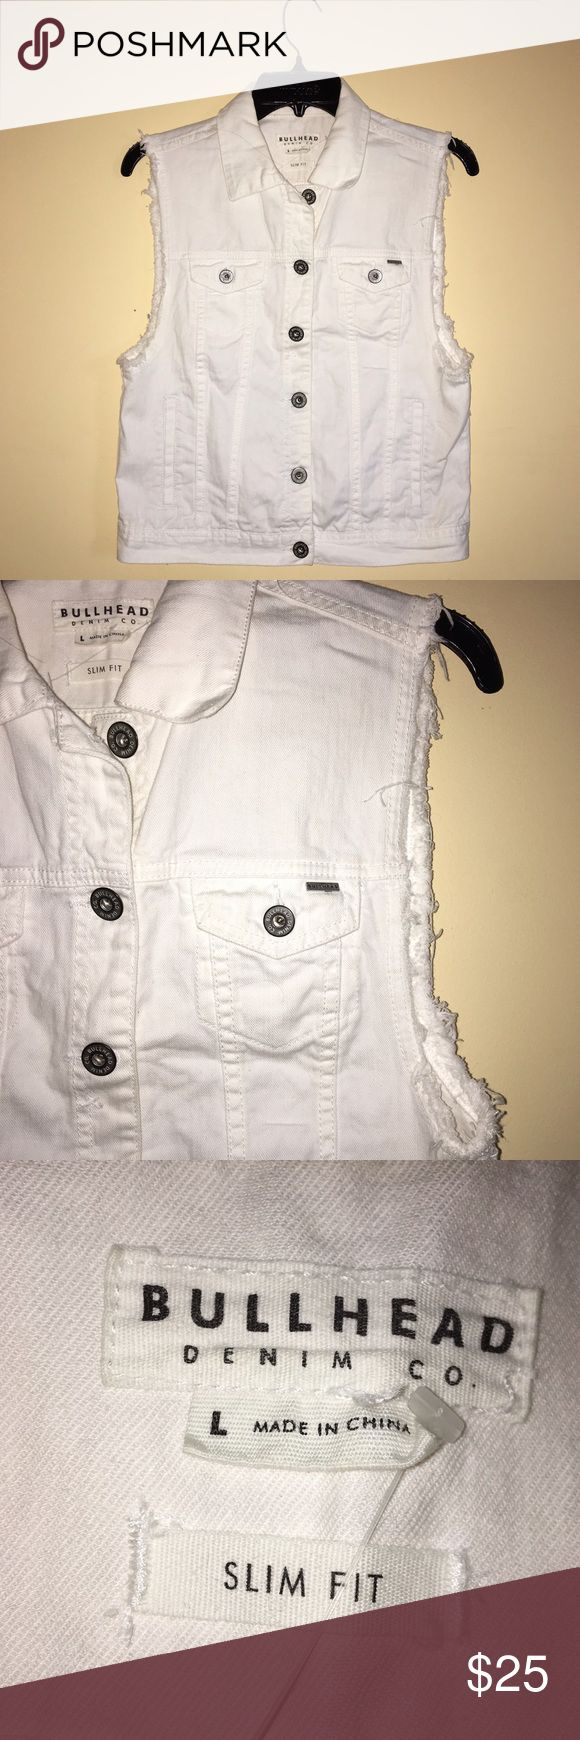 White Sleeveless Denim jacket White, sleeveless, denim jacket. Used about twice and never used again. In really great condition. Size LARGE. No PAYPAL! NO TADES! Thanks ❤️. Feel free to make any offers!! Pacsun/Bullhead Jackets & Coats Jean Jackets